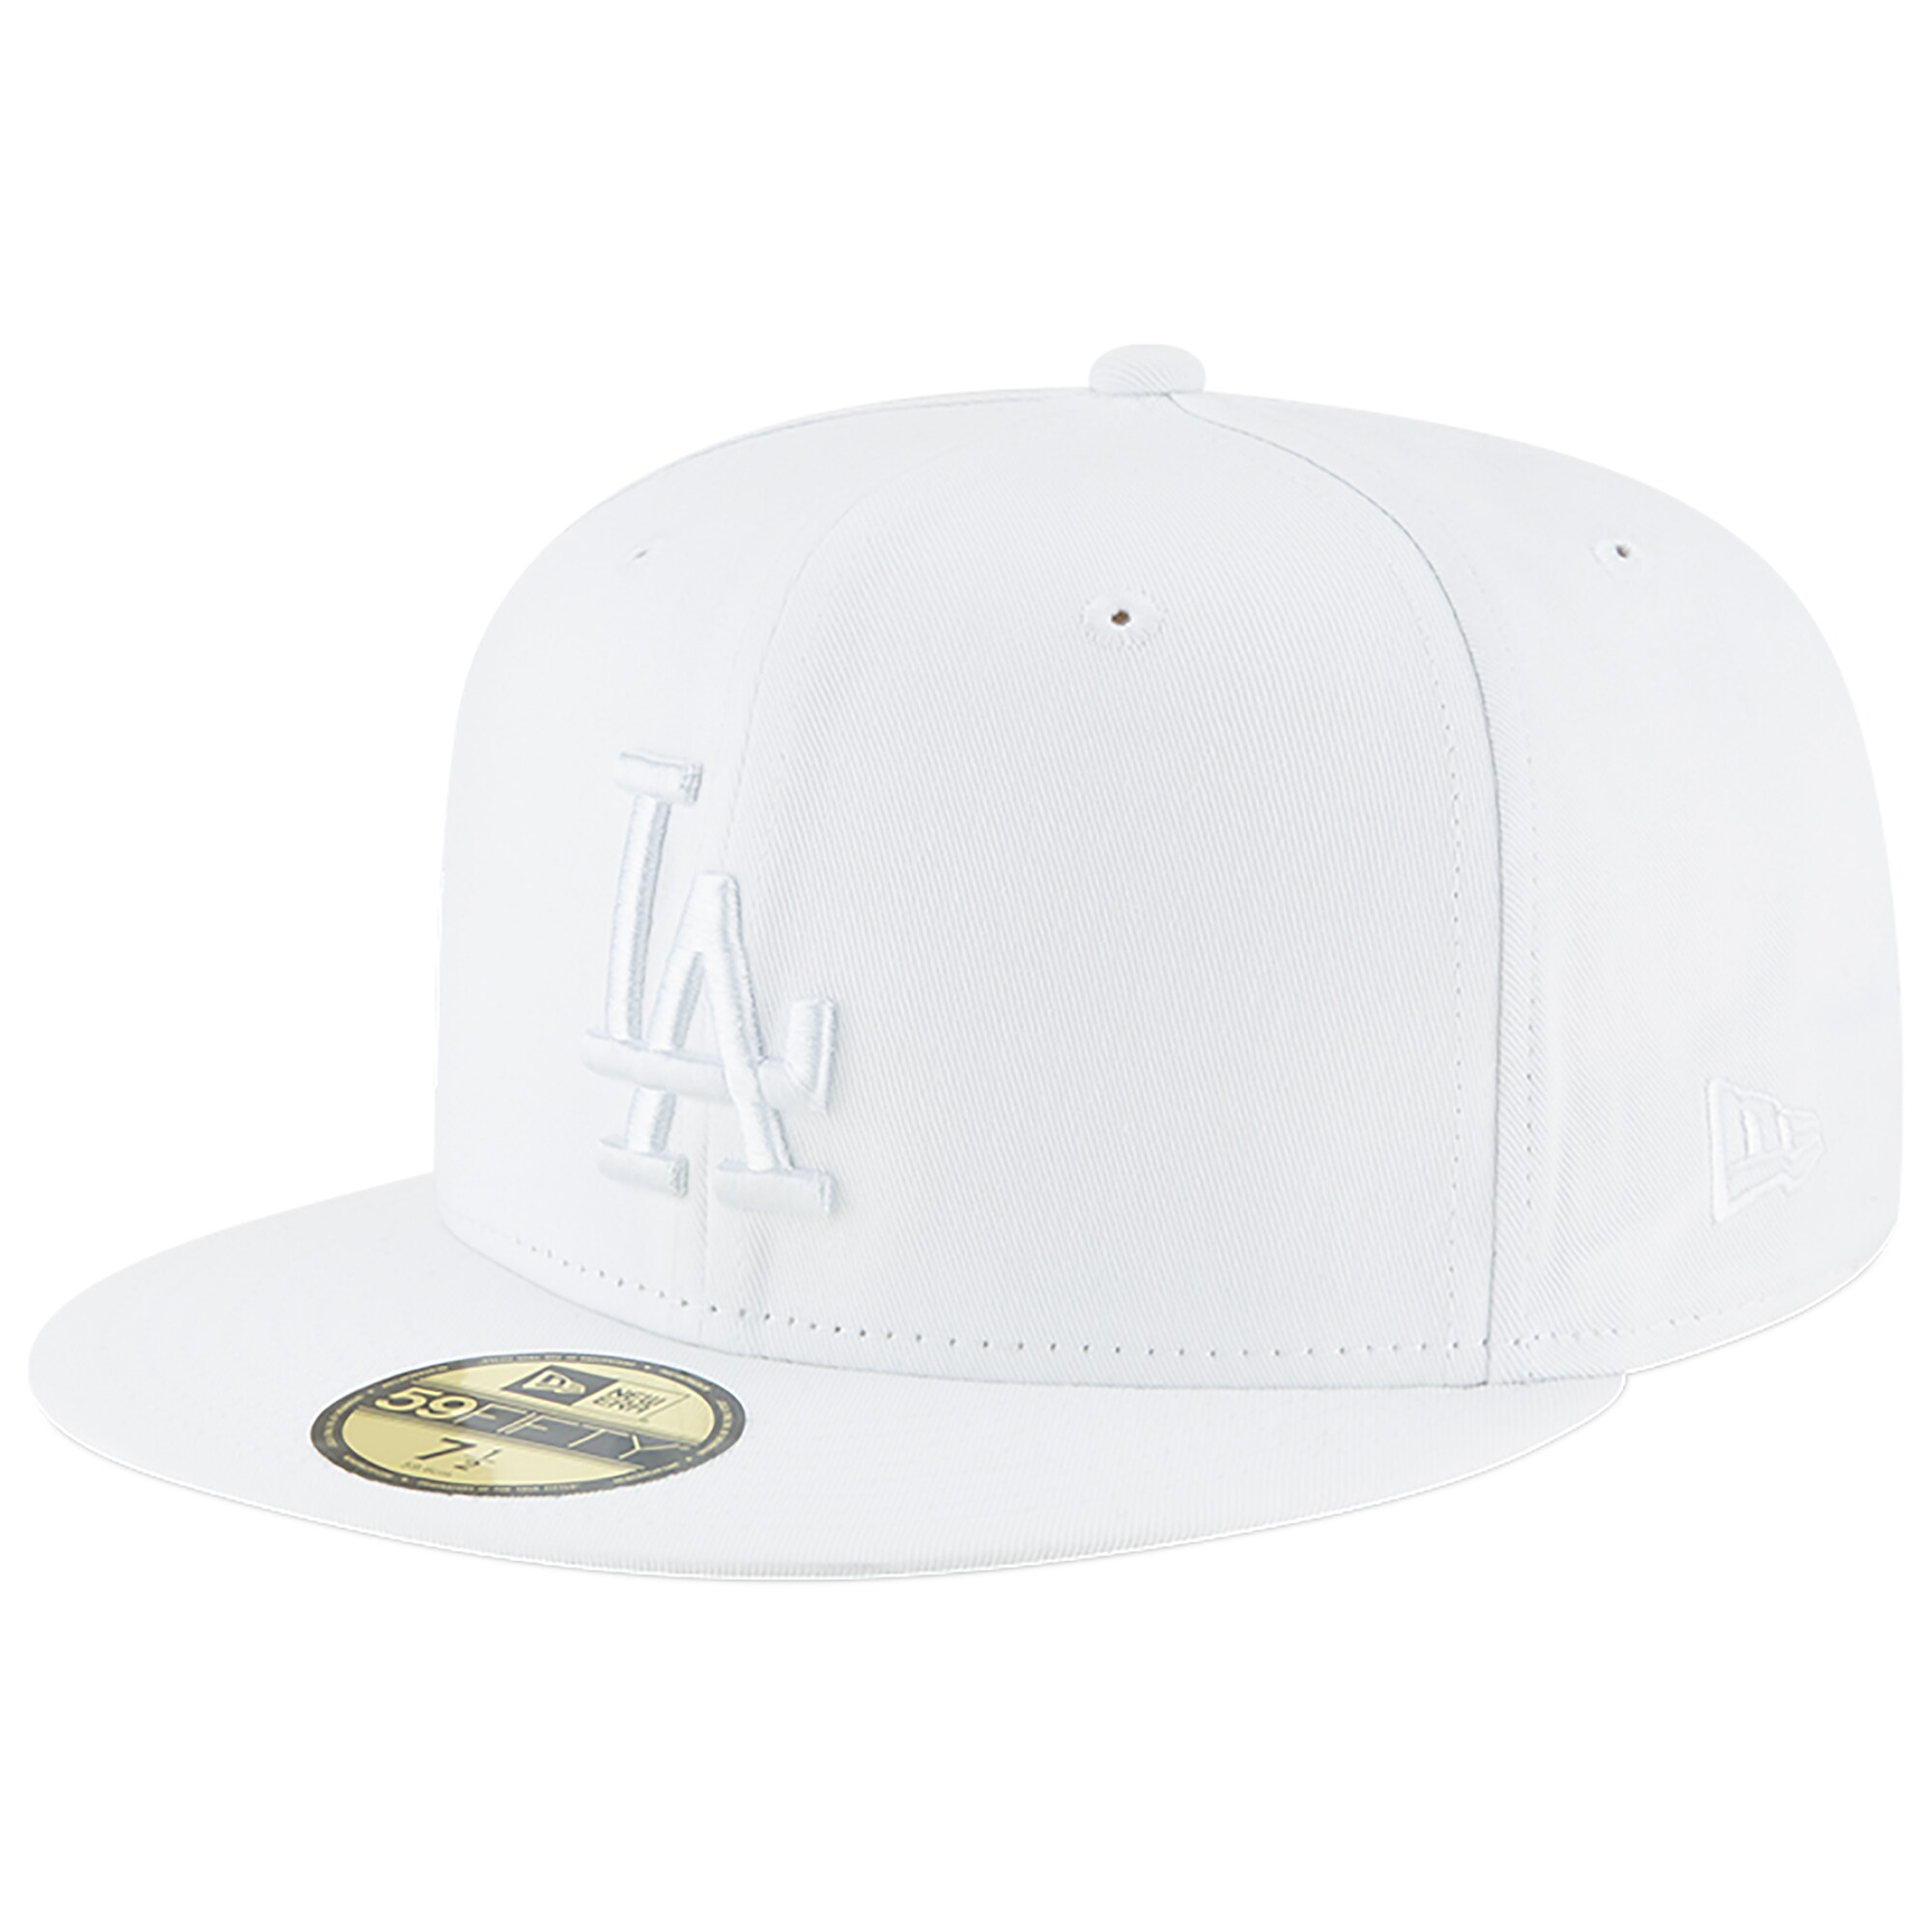 Los Angeles Dodgers New Era Primary Logo Basic 59FIFTY Fitted Hat - White